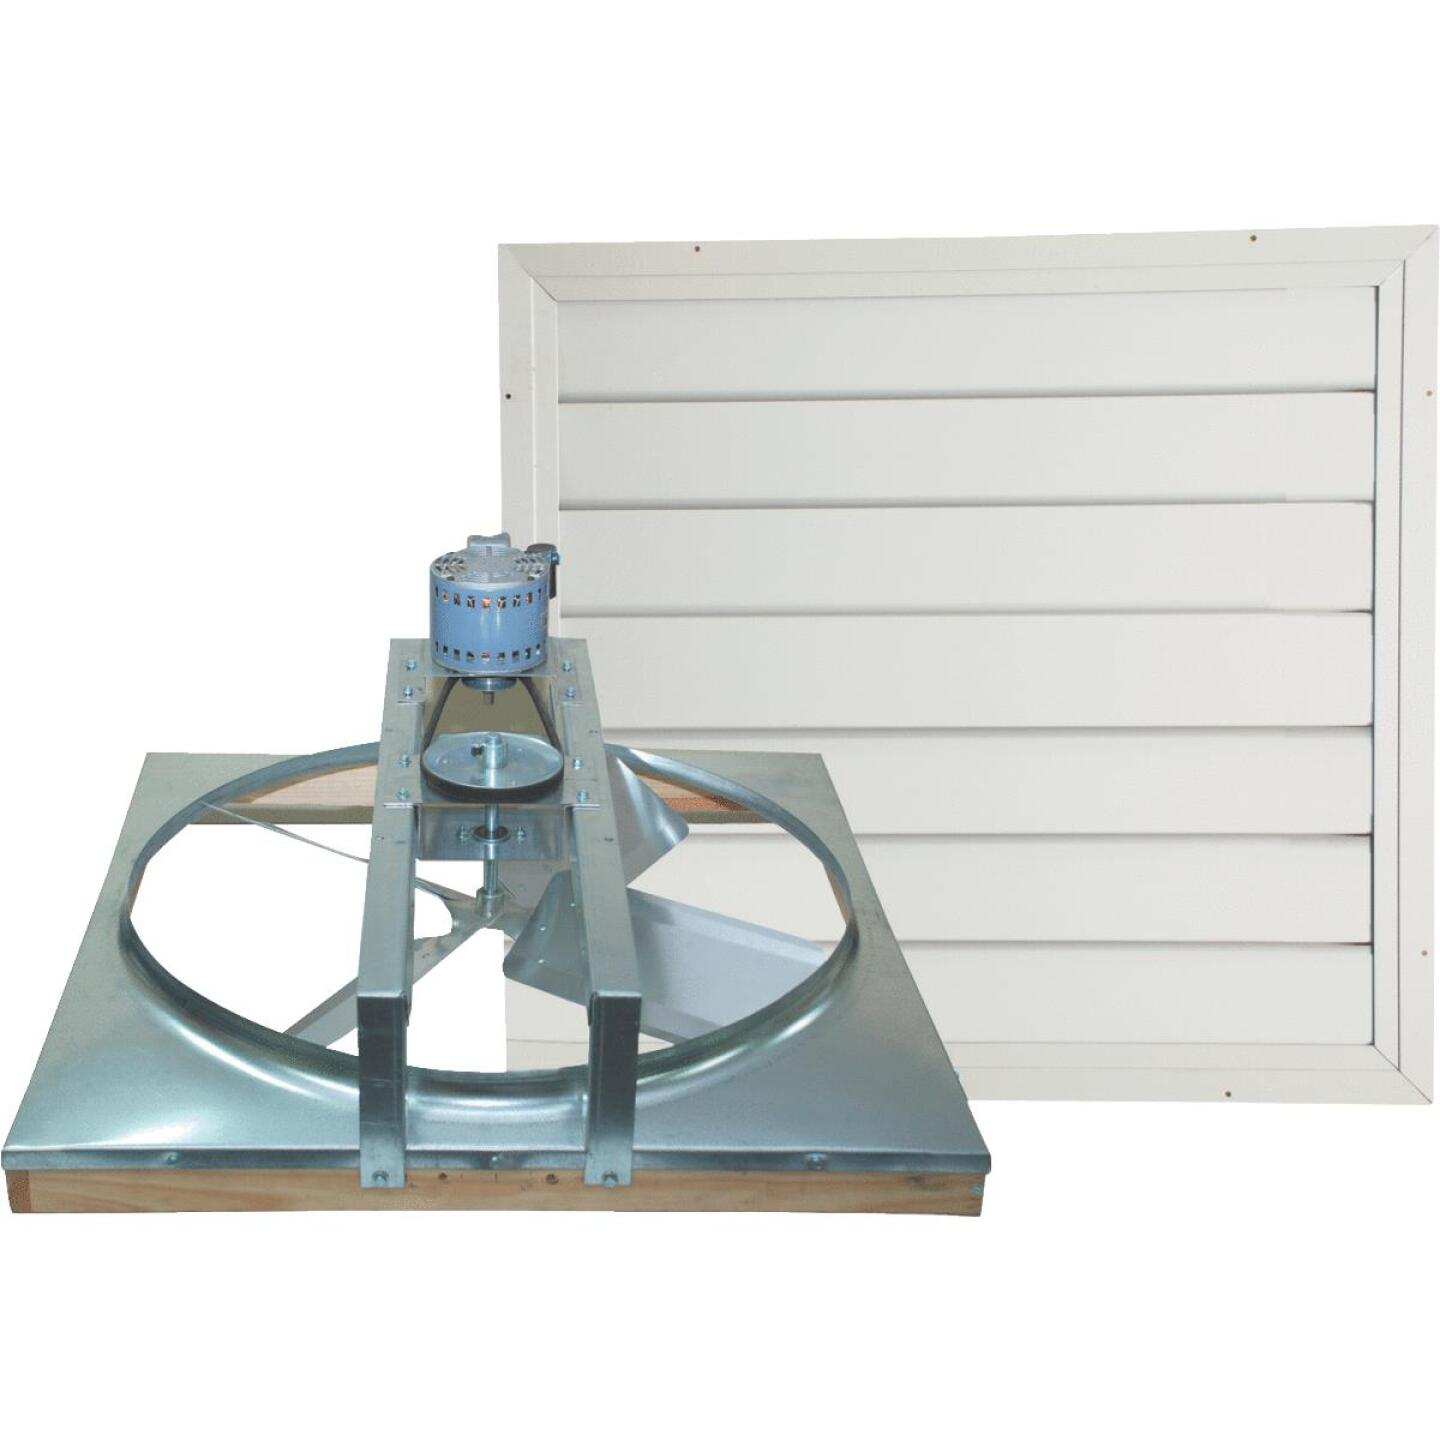 """Ventamatic Cool Attic 24"""" Belt Drive Up to 1800 sq ft Whole House Fan Image 1"""